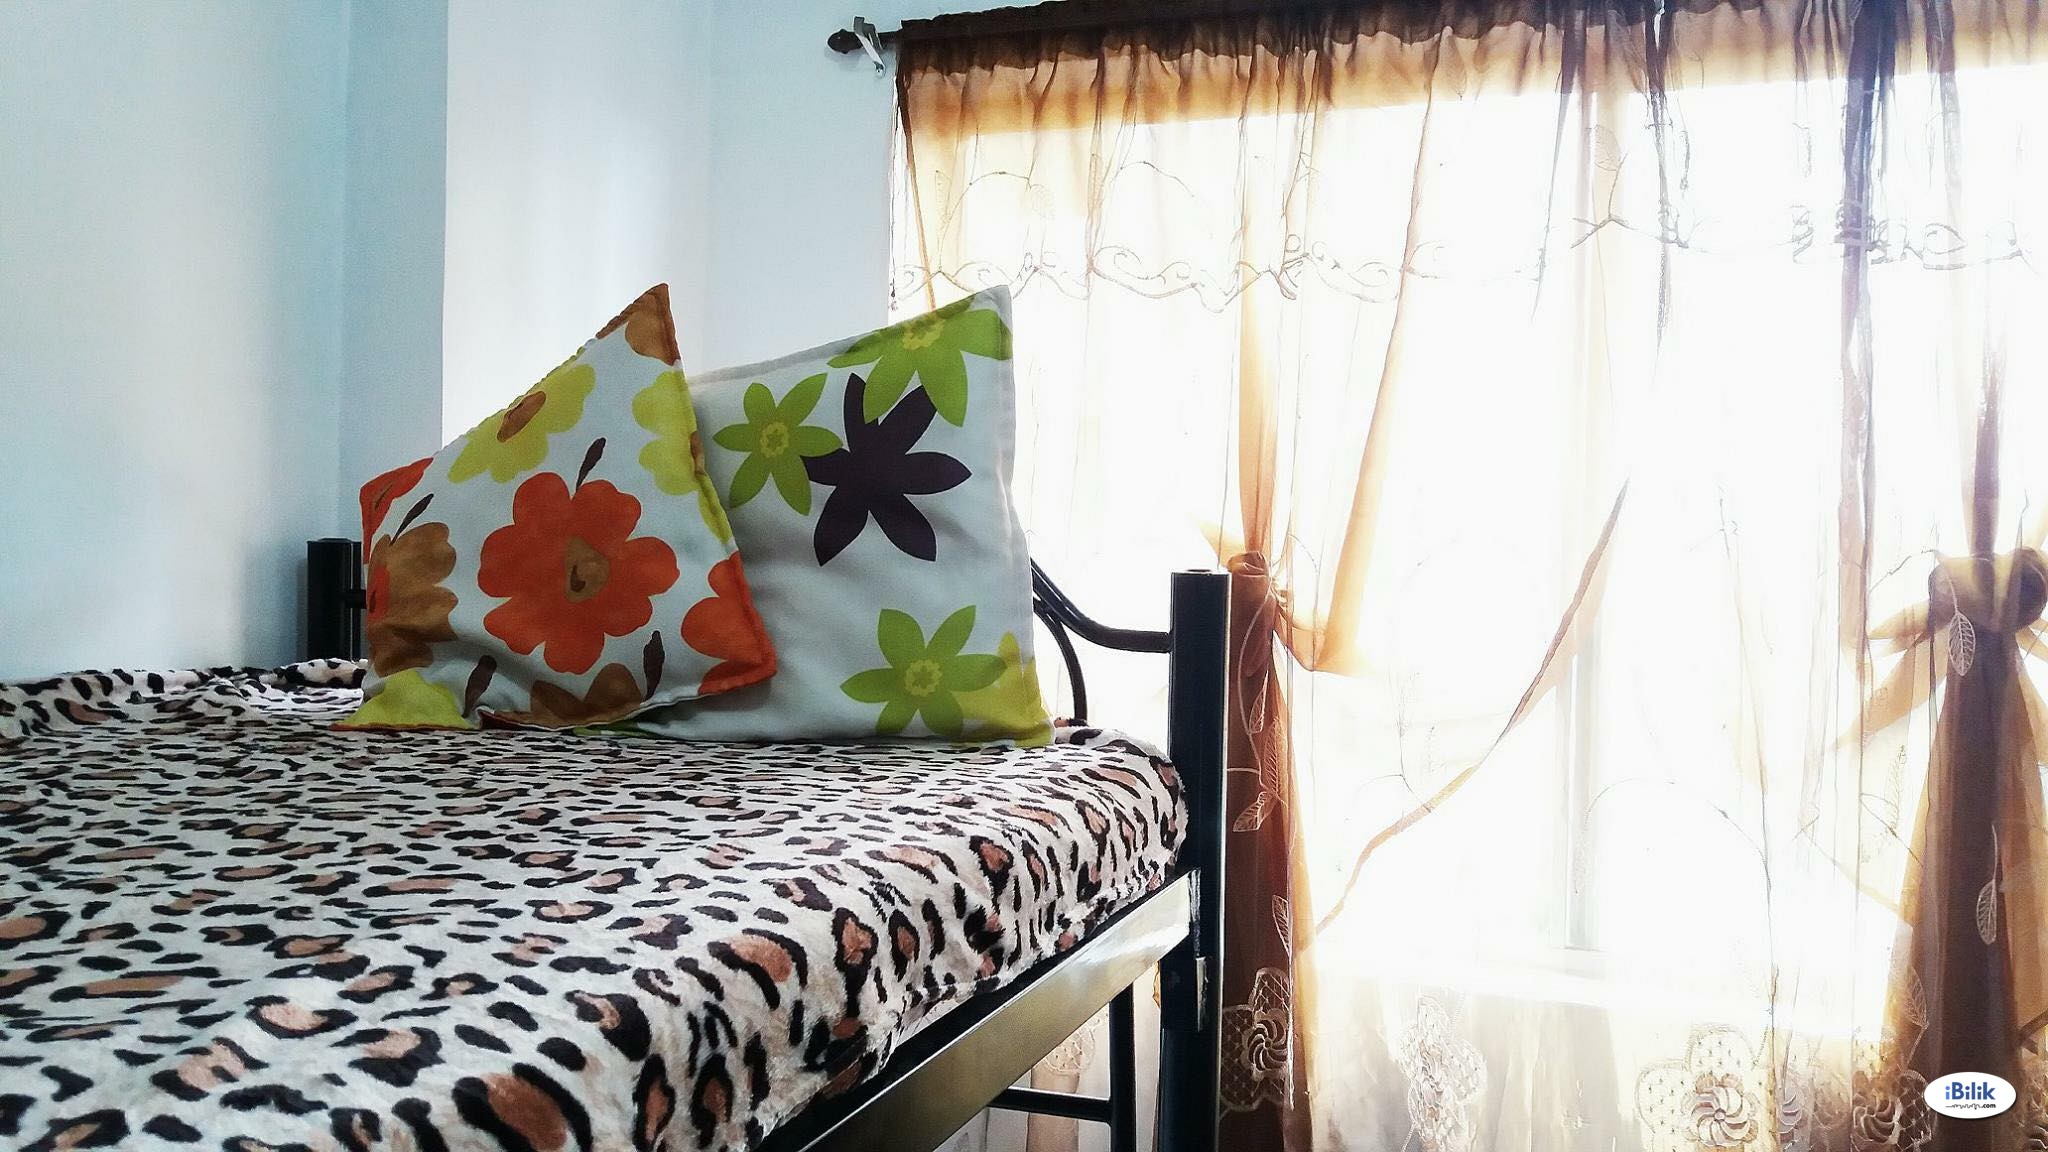 Condo Bedspace for Female (Woodsville Viverde Mansions)